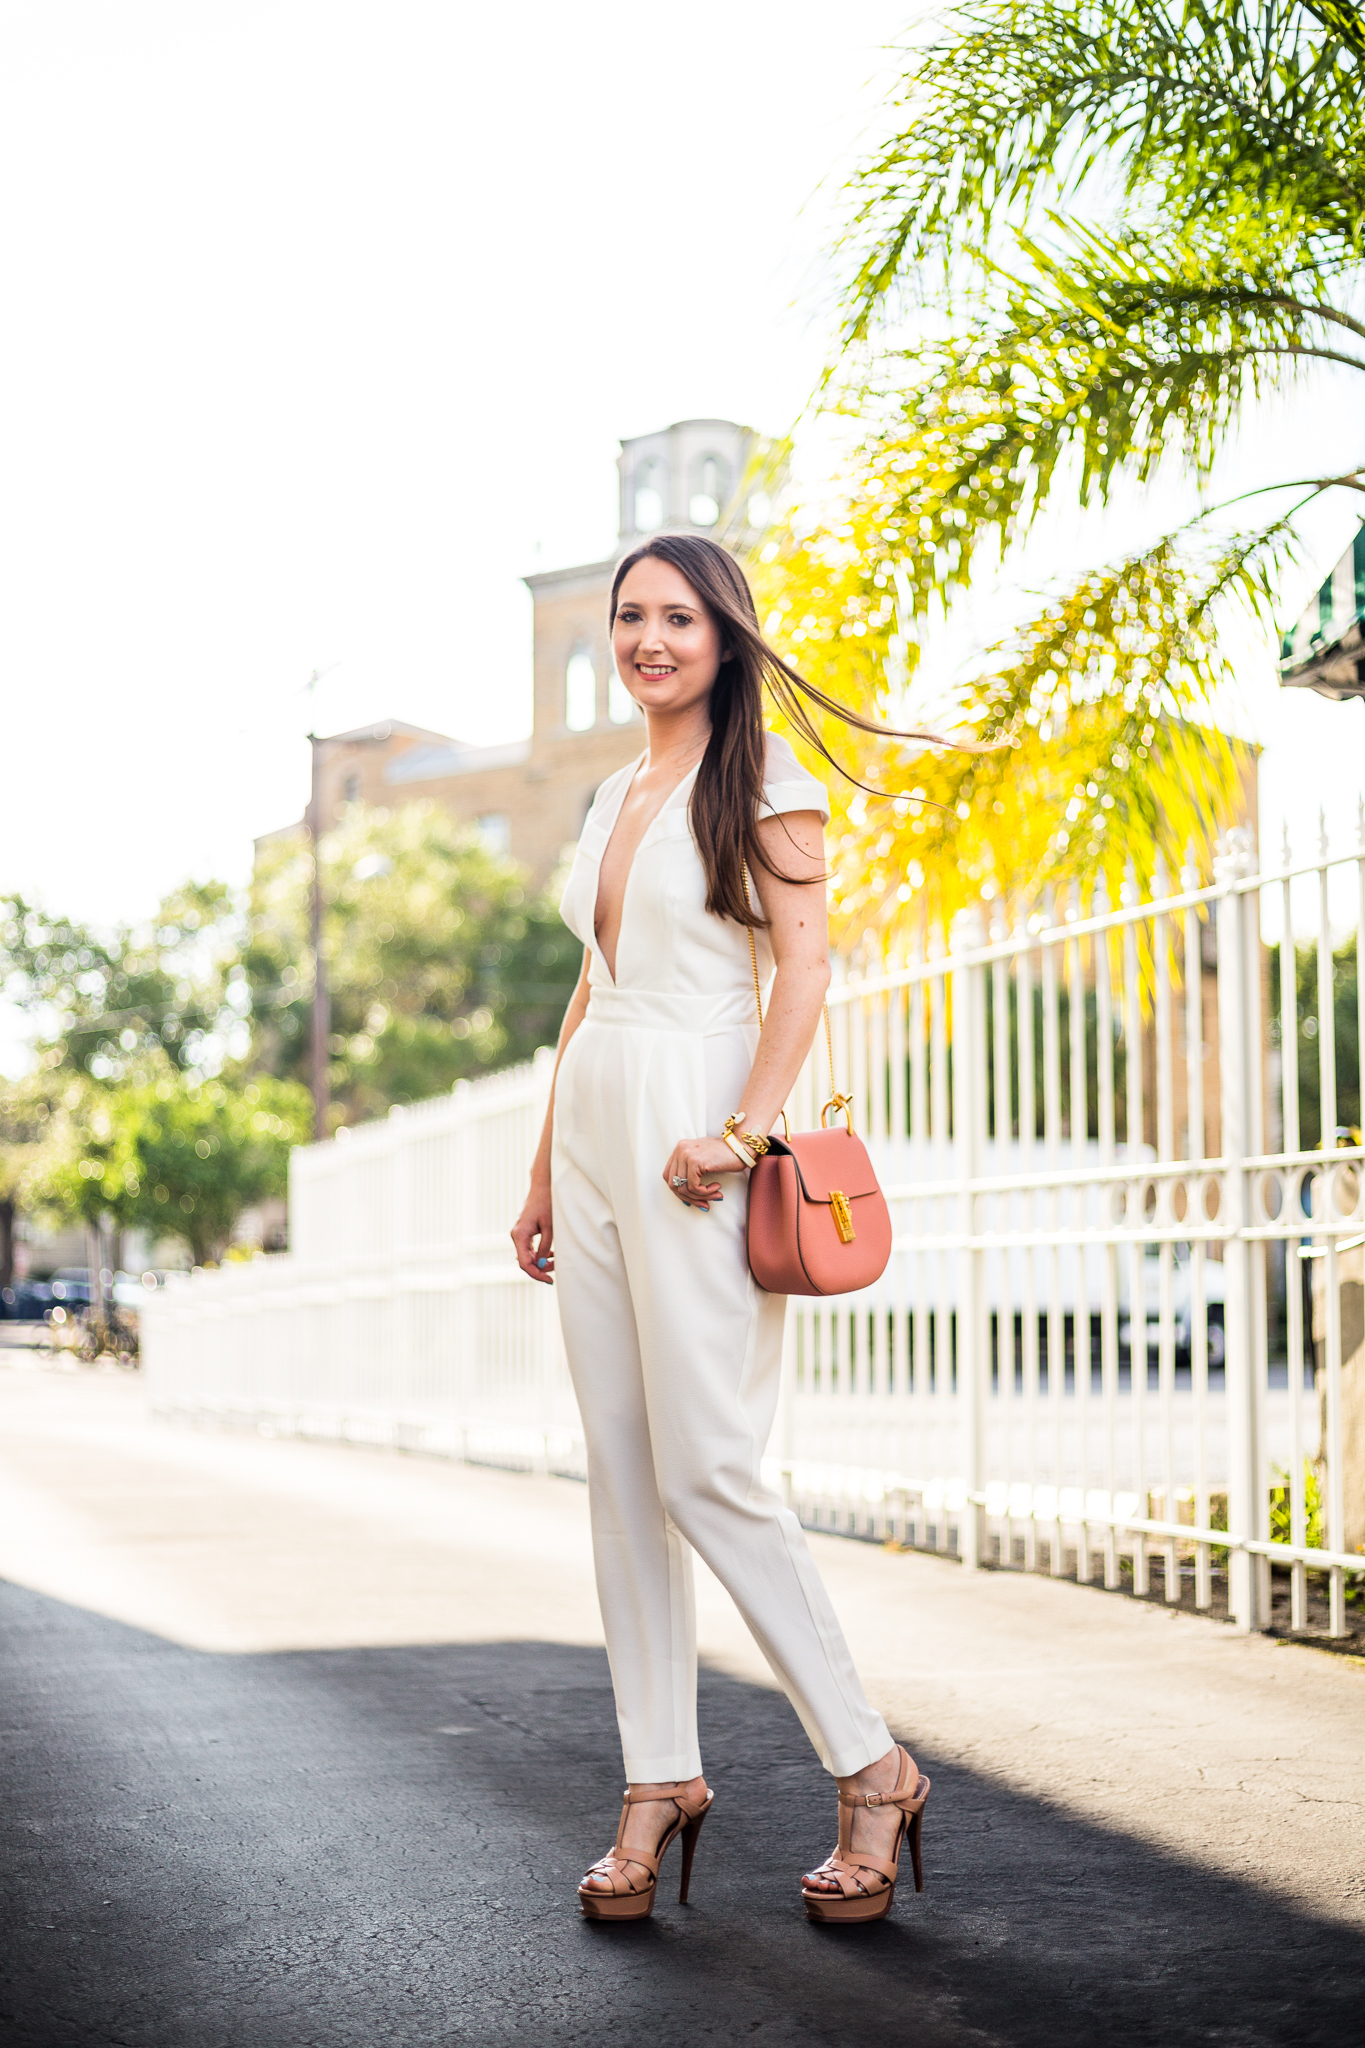 IS WEARING WHITE AFTER LABOR DAY A FASHION FAUX PAS? White jumpsuit, ysl tribute heels, Chloe drew handbag, white outfit, jumpsuit